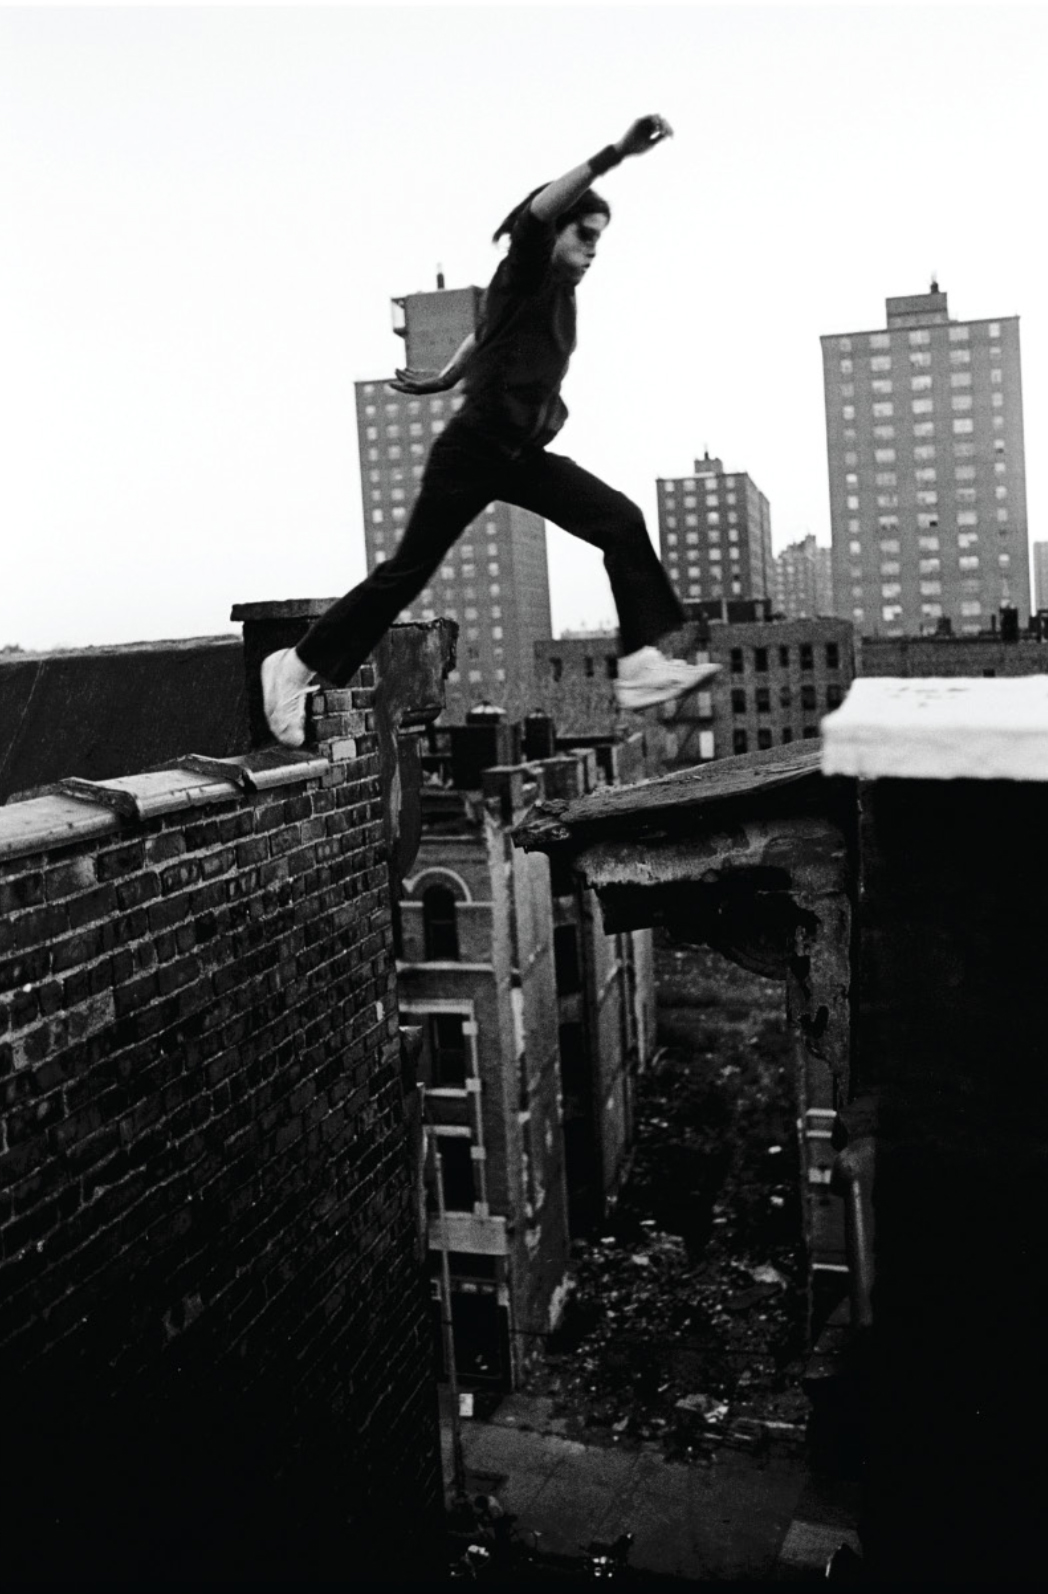 Boy jumping (Ralph Jumps), 1977 Featured in Outside the Dream, Shames' book published in 1991 copy